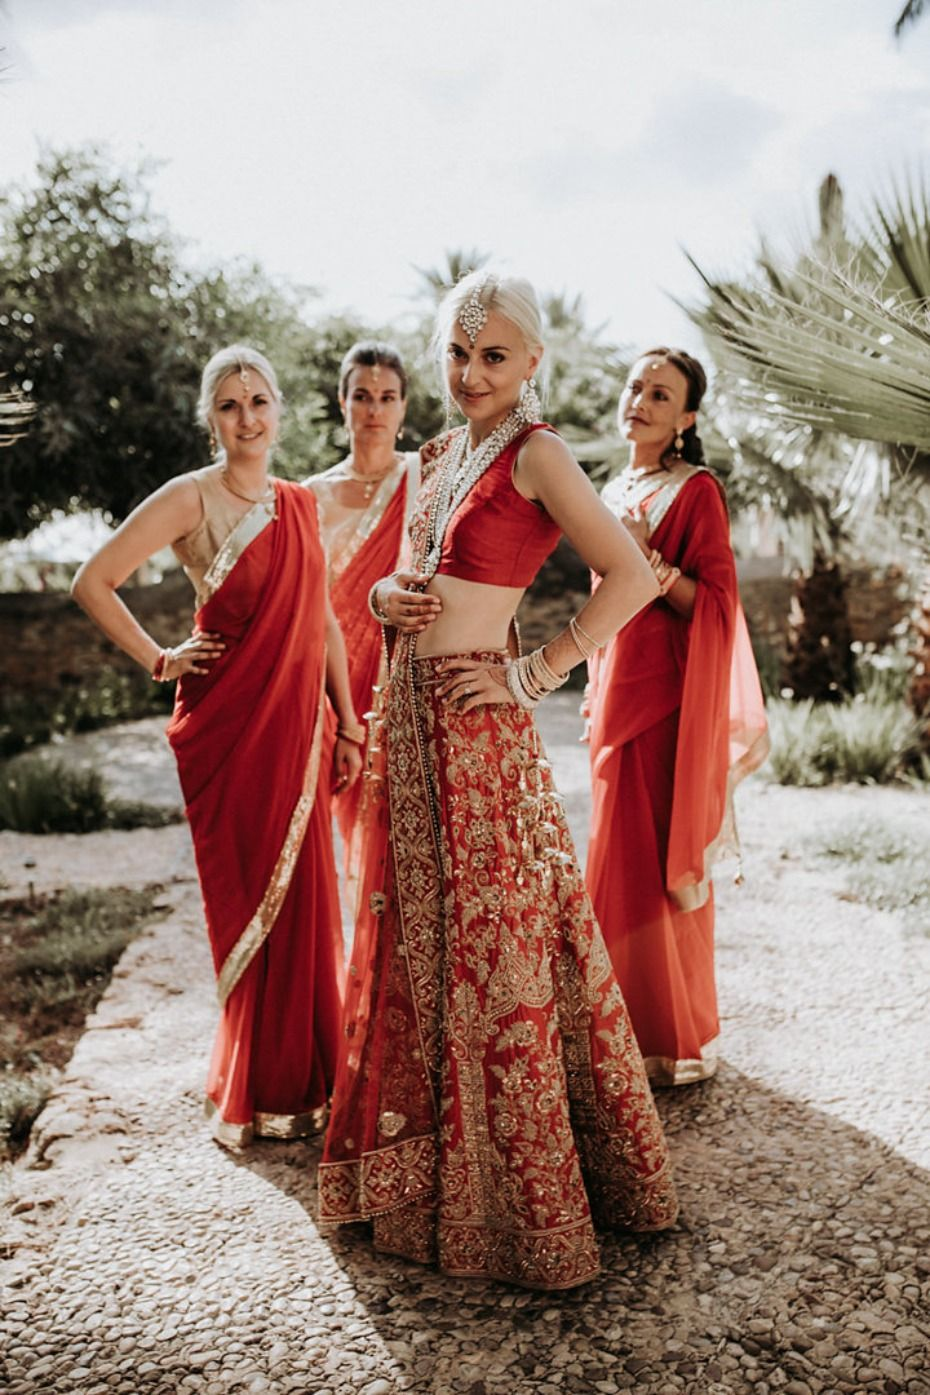 Two Cultures Beautifully Married Into One Wedding Day Indian Bridesmaid Dresses Indian Bridesmaids Indian Wedding Outfits